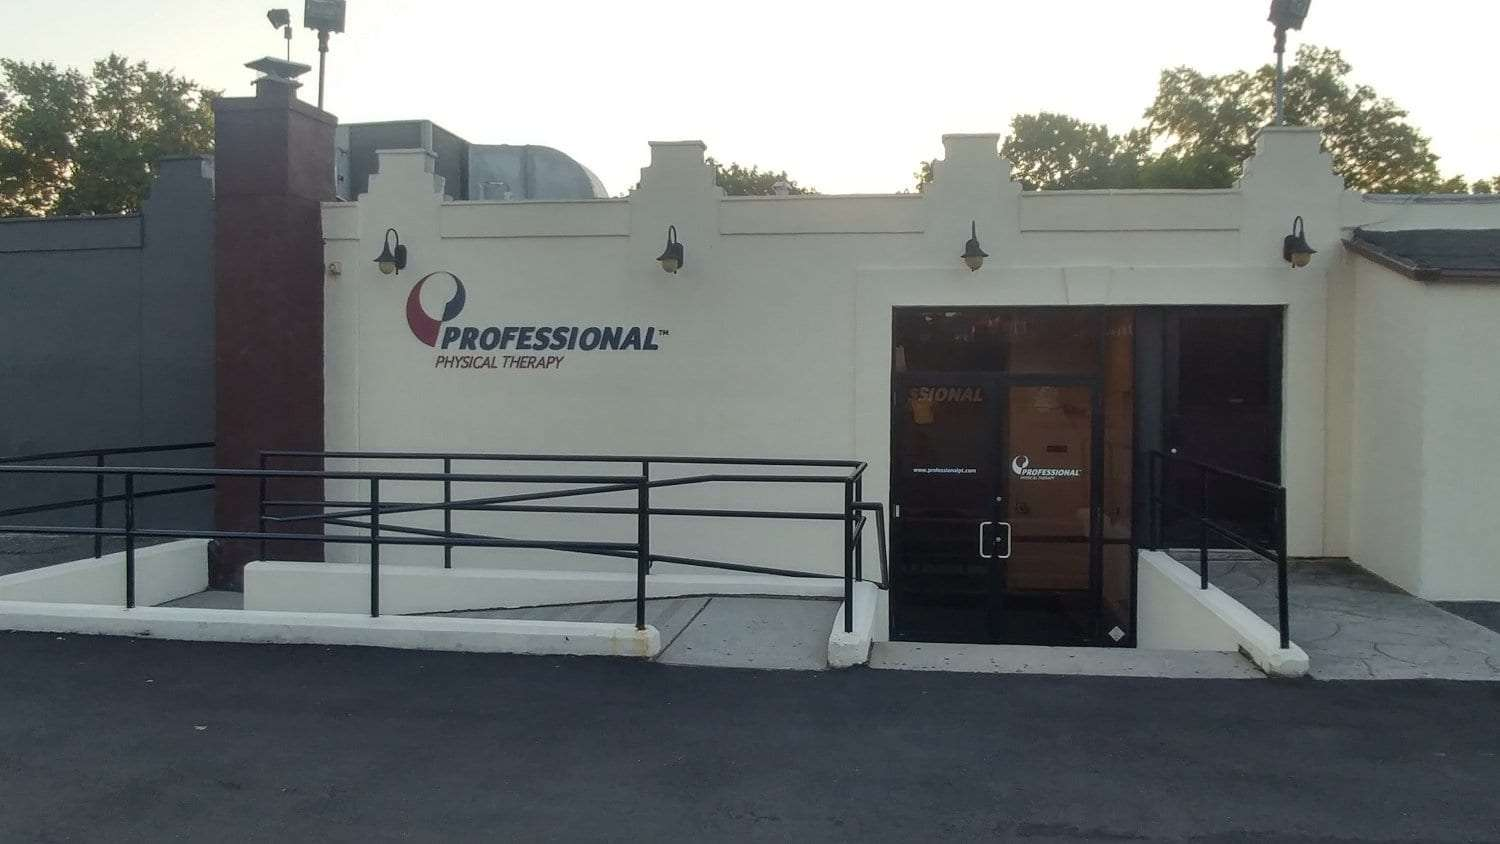 An image of the exterior of our physical therapy clinic in Bayside Whitestone, New York.